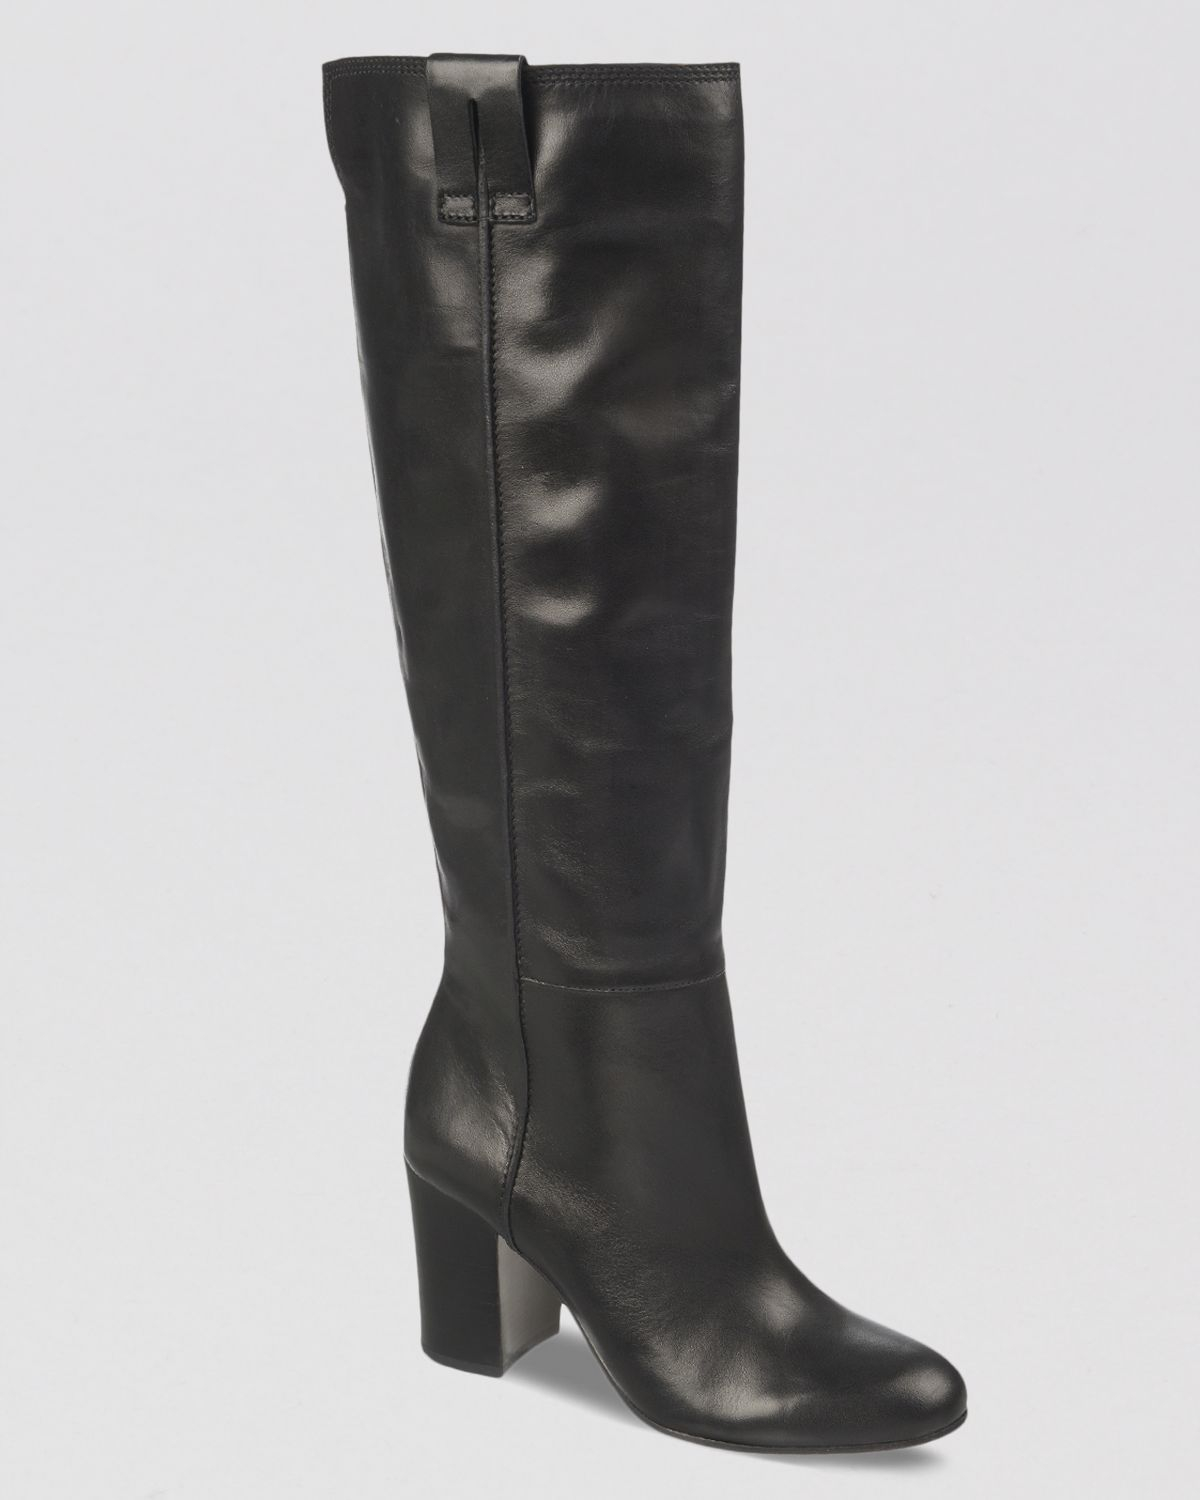 Sam Edelman Tall Dress Boots